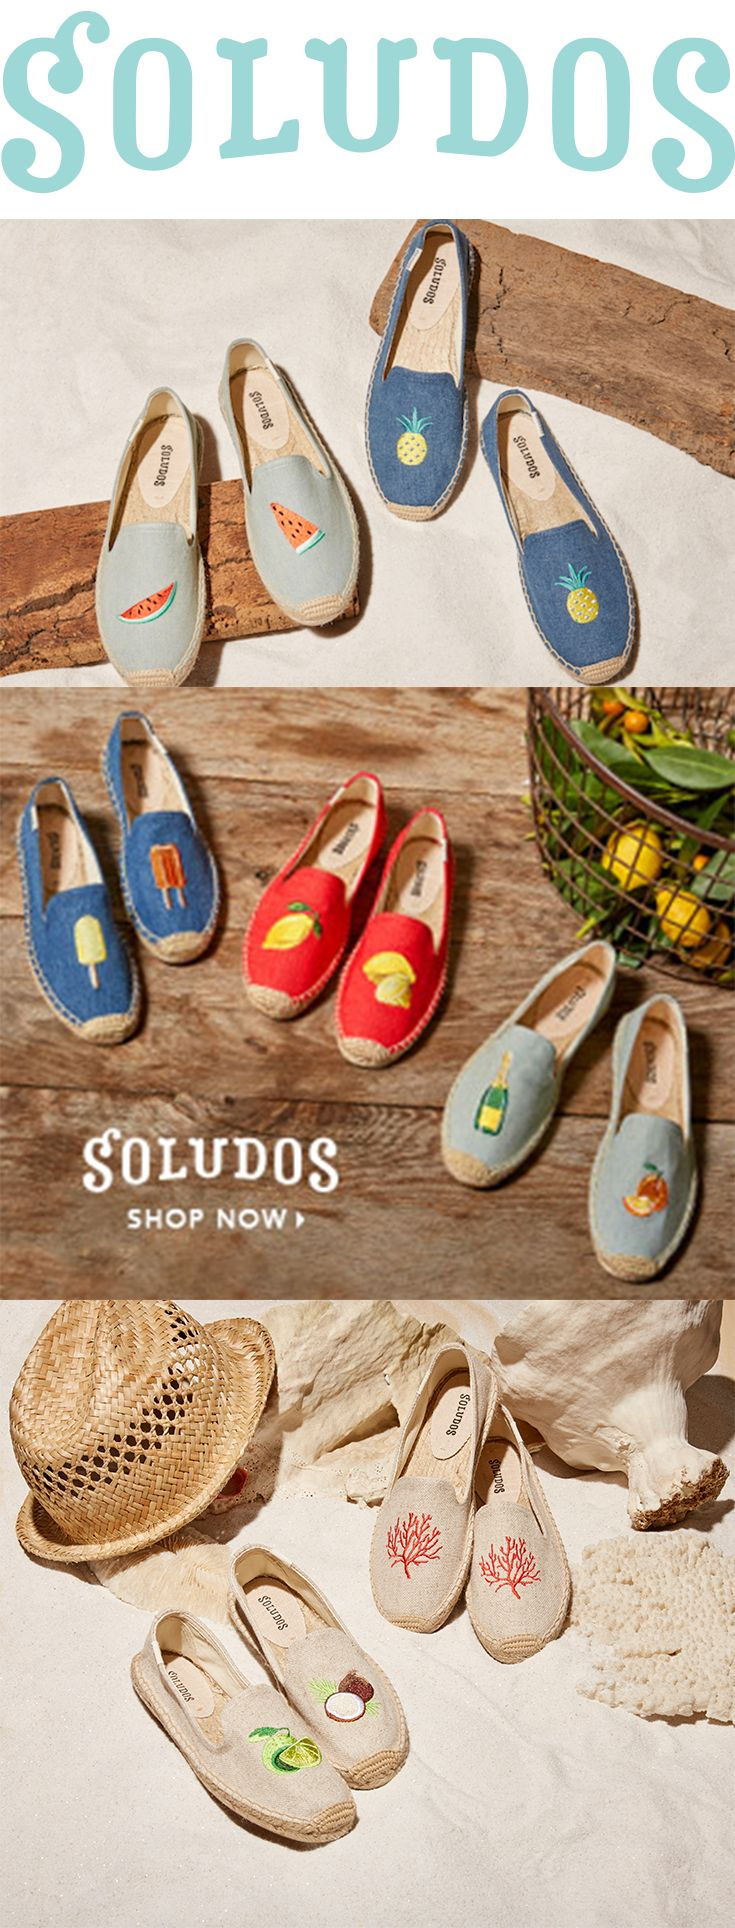 Take the best parts of Spring with you at all times. Shop our new Spring Collection now at Soludos.com